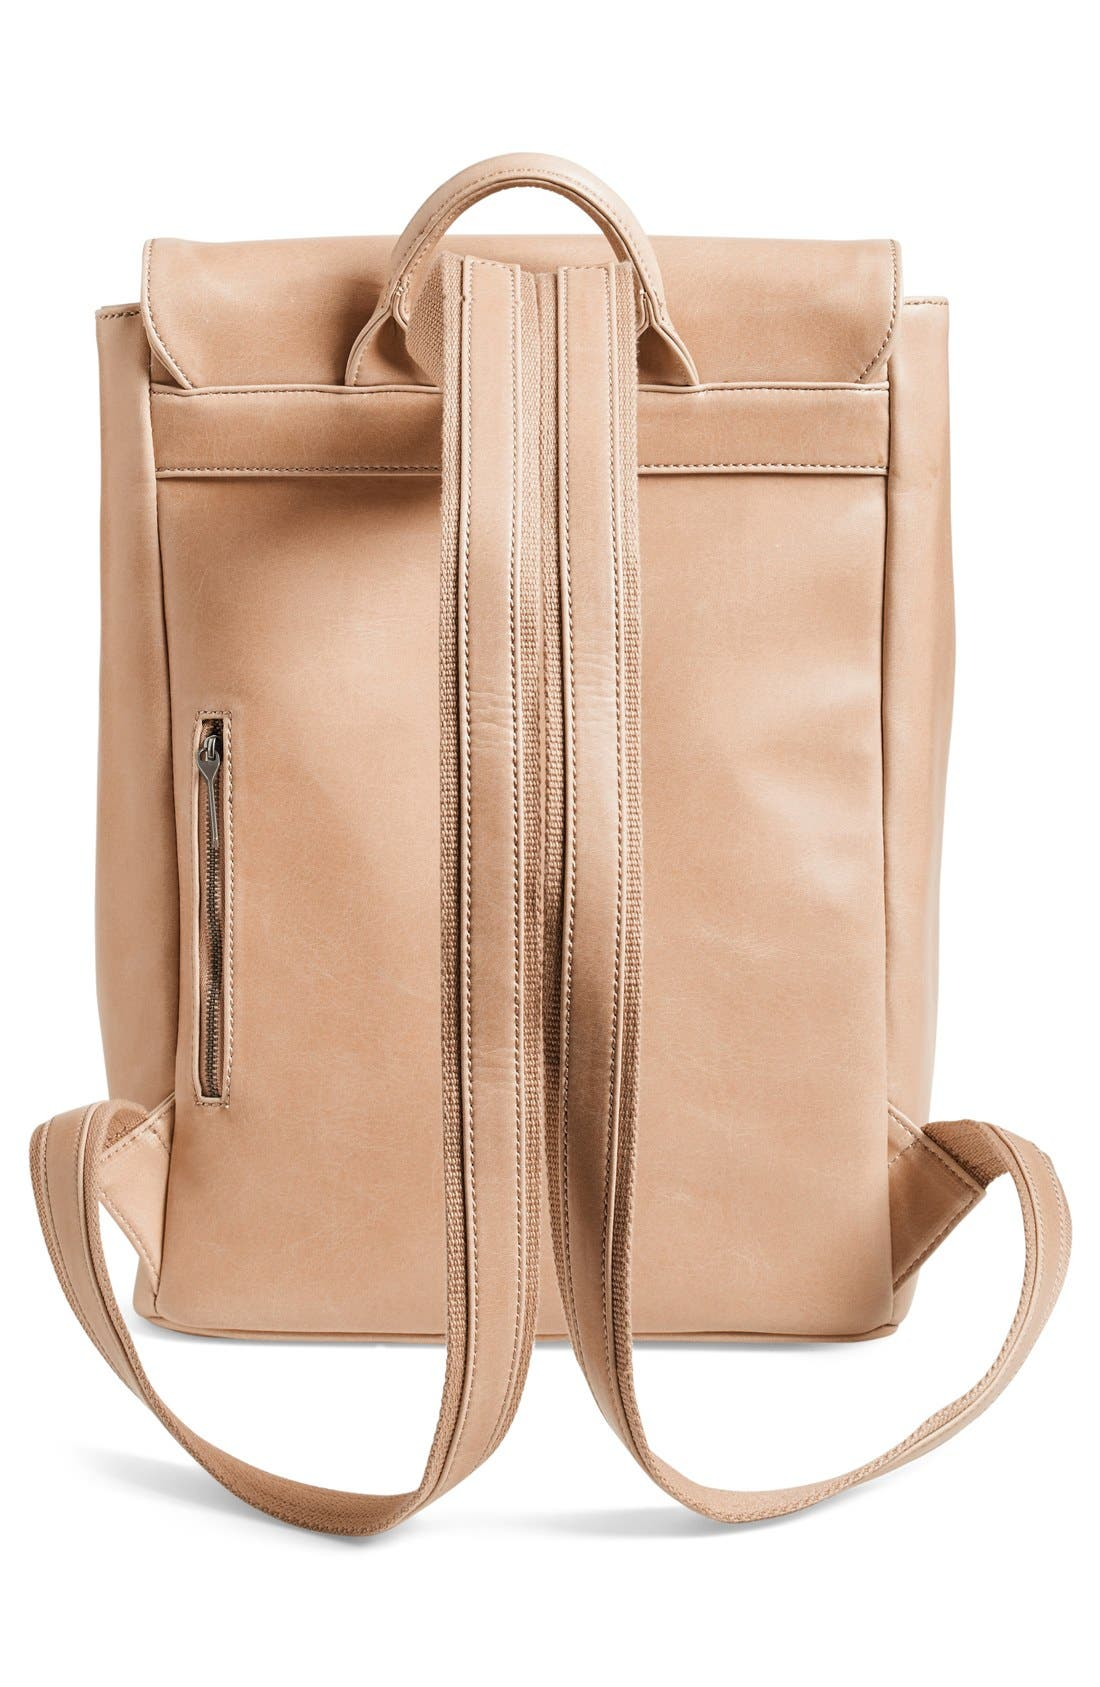 'Fabi' Faux Leather Laptop Backpack,                             Alternate thumbnail 3, color,                             Cardamom